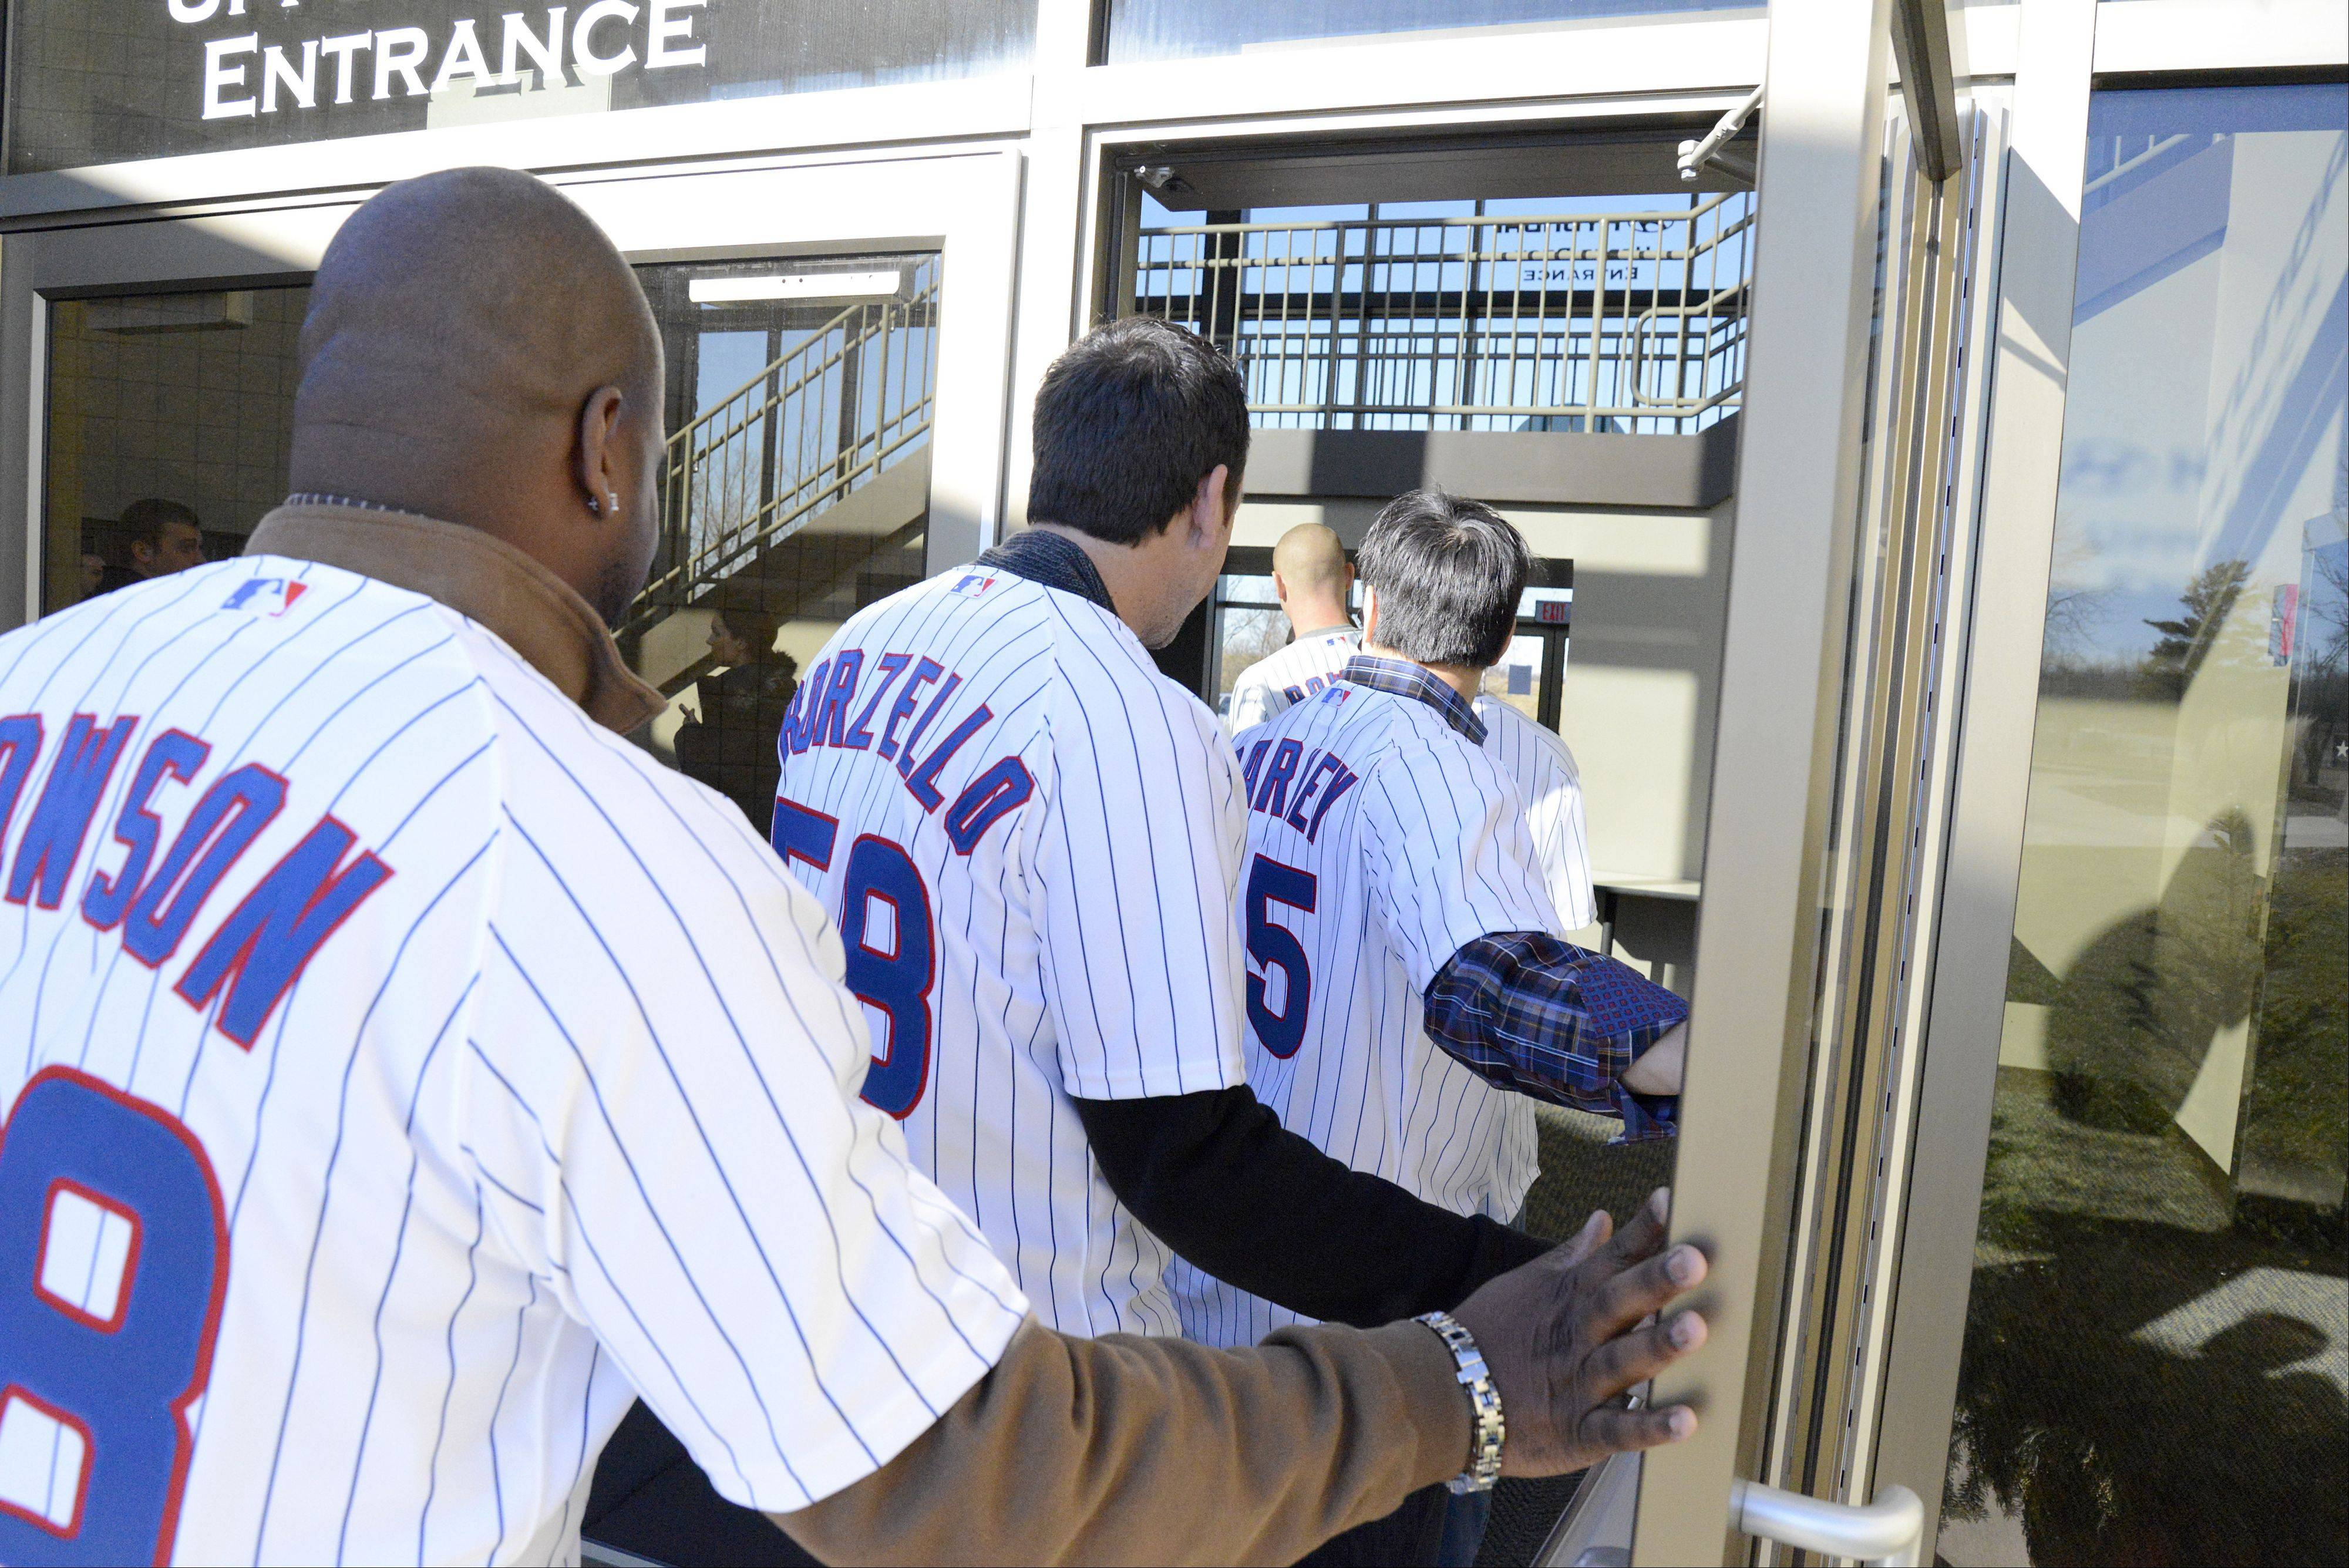 Chicago Cubs hitting coach James Rowson, staff assistant Mike Borzello and second baseman and 2012 Gold Glove winner Darwin Barney enter the Kane County Cougars office for a quick visit in Geneva Jan. 17. Players, coaches and staff of the Chicago Cubs Cubs On the Move 2013 Caravan Tour came by for about 30 minutes after meeting with children at an Oswego school.